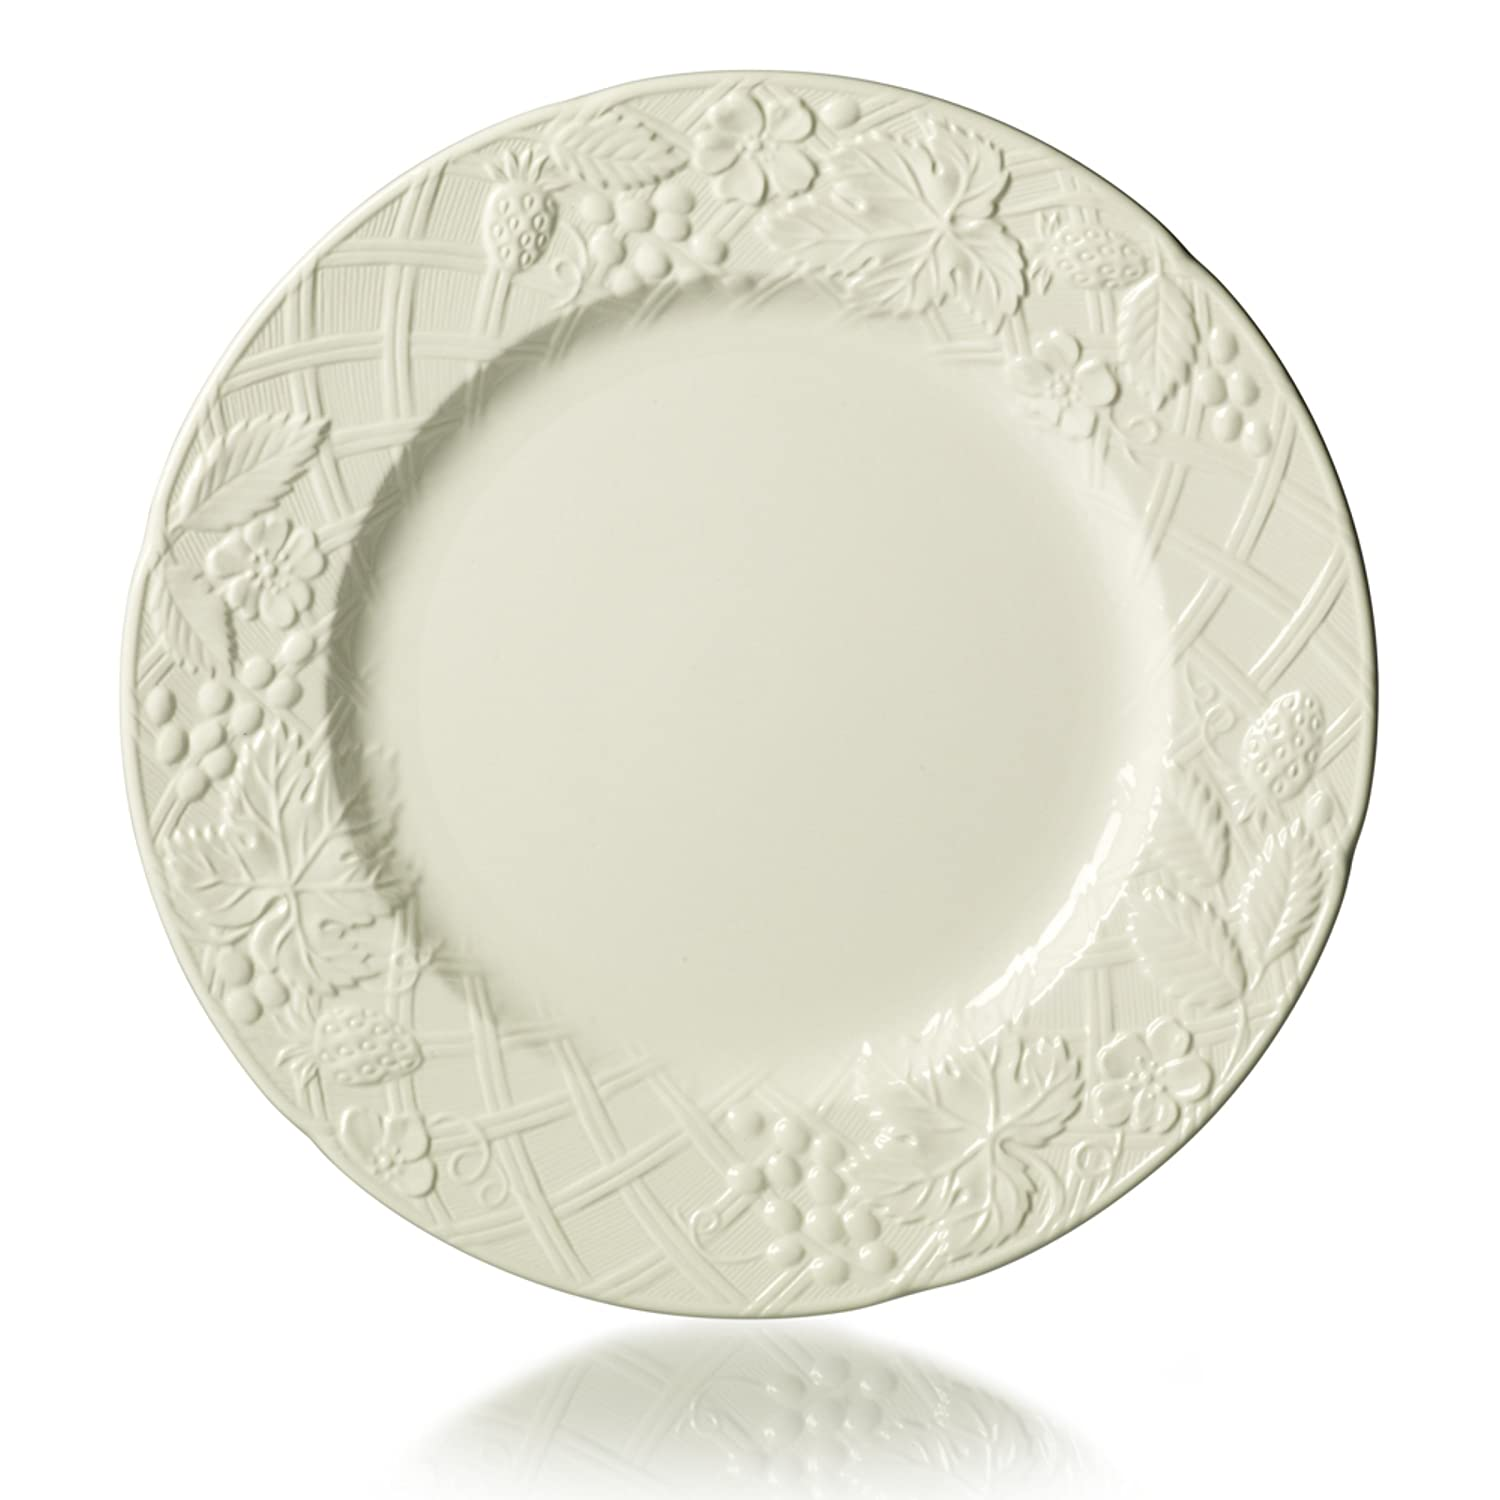 Amazon.com | Mikasa English Countryside Dinner Plate 11.25-Inch Dinner Plates  sc 1 st  Amazon.com & Amazon.com | Mikasa English Countryside Dinner Plate 11.25-Inch ...